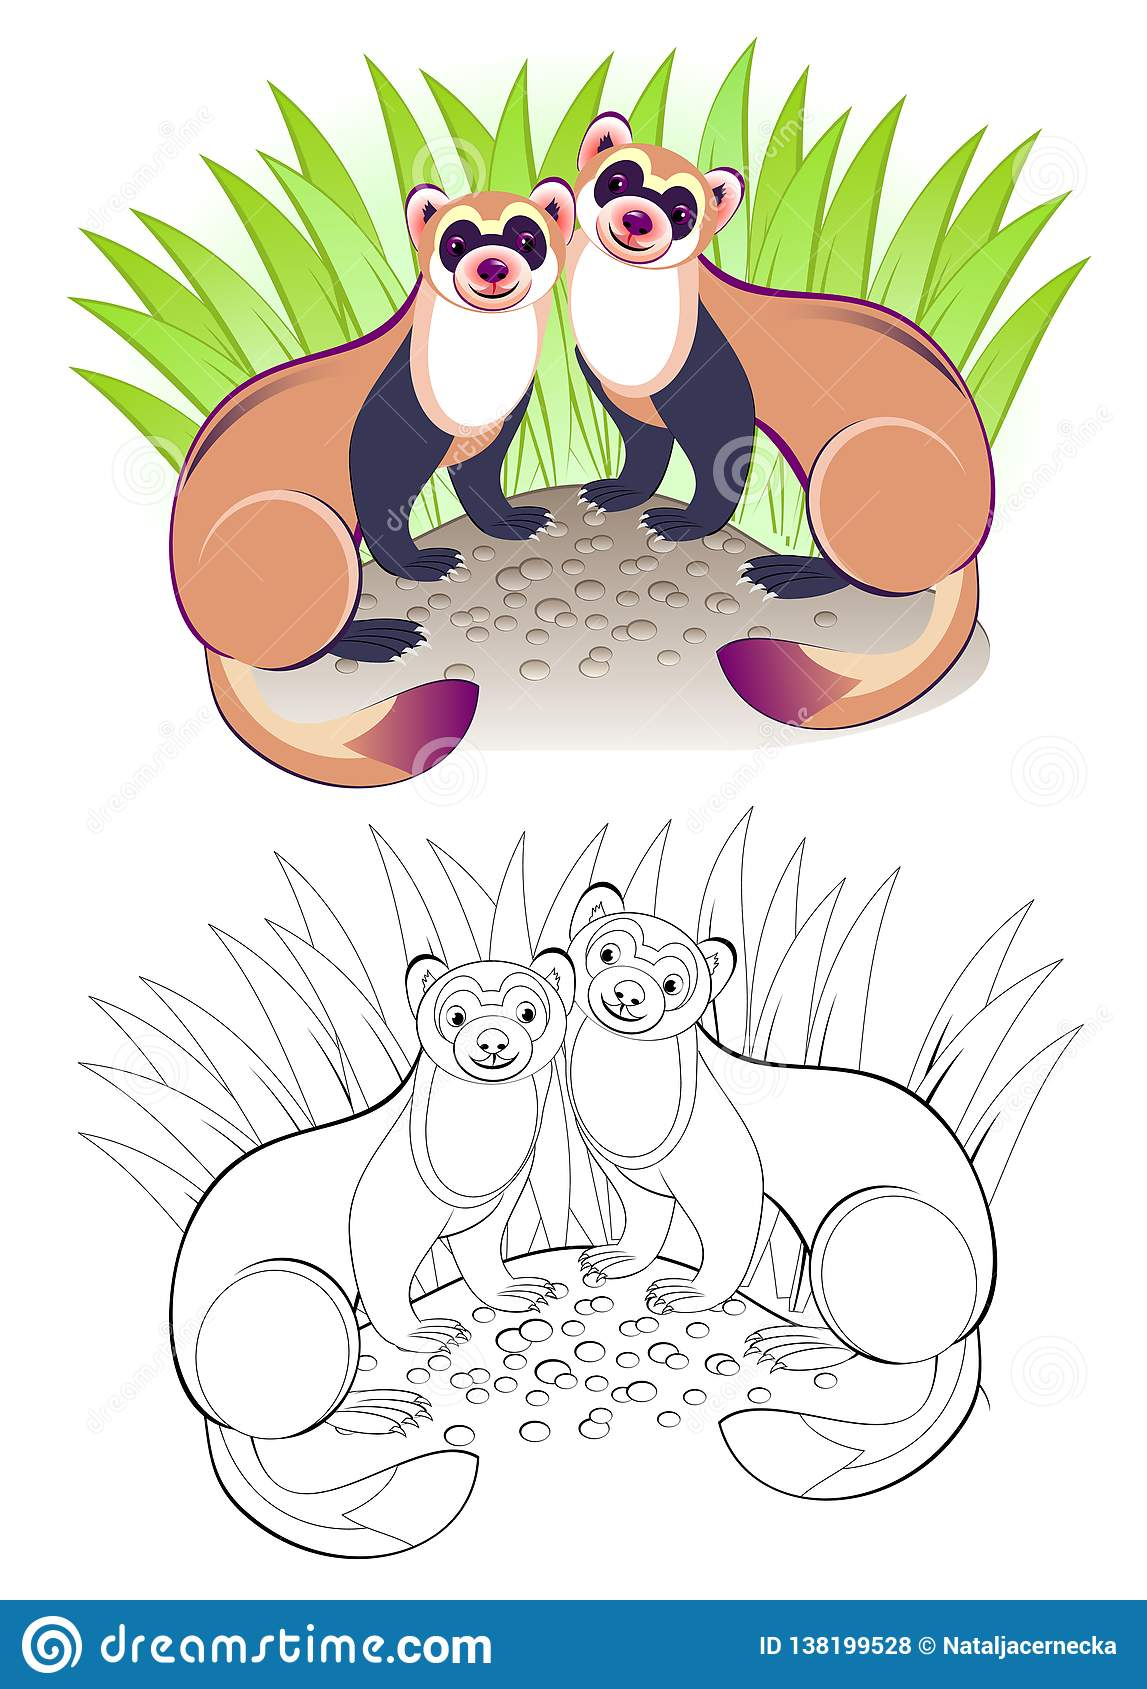 Fantasy Illustration Of Couple Cute Ferrets Colorful And